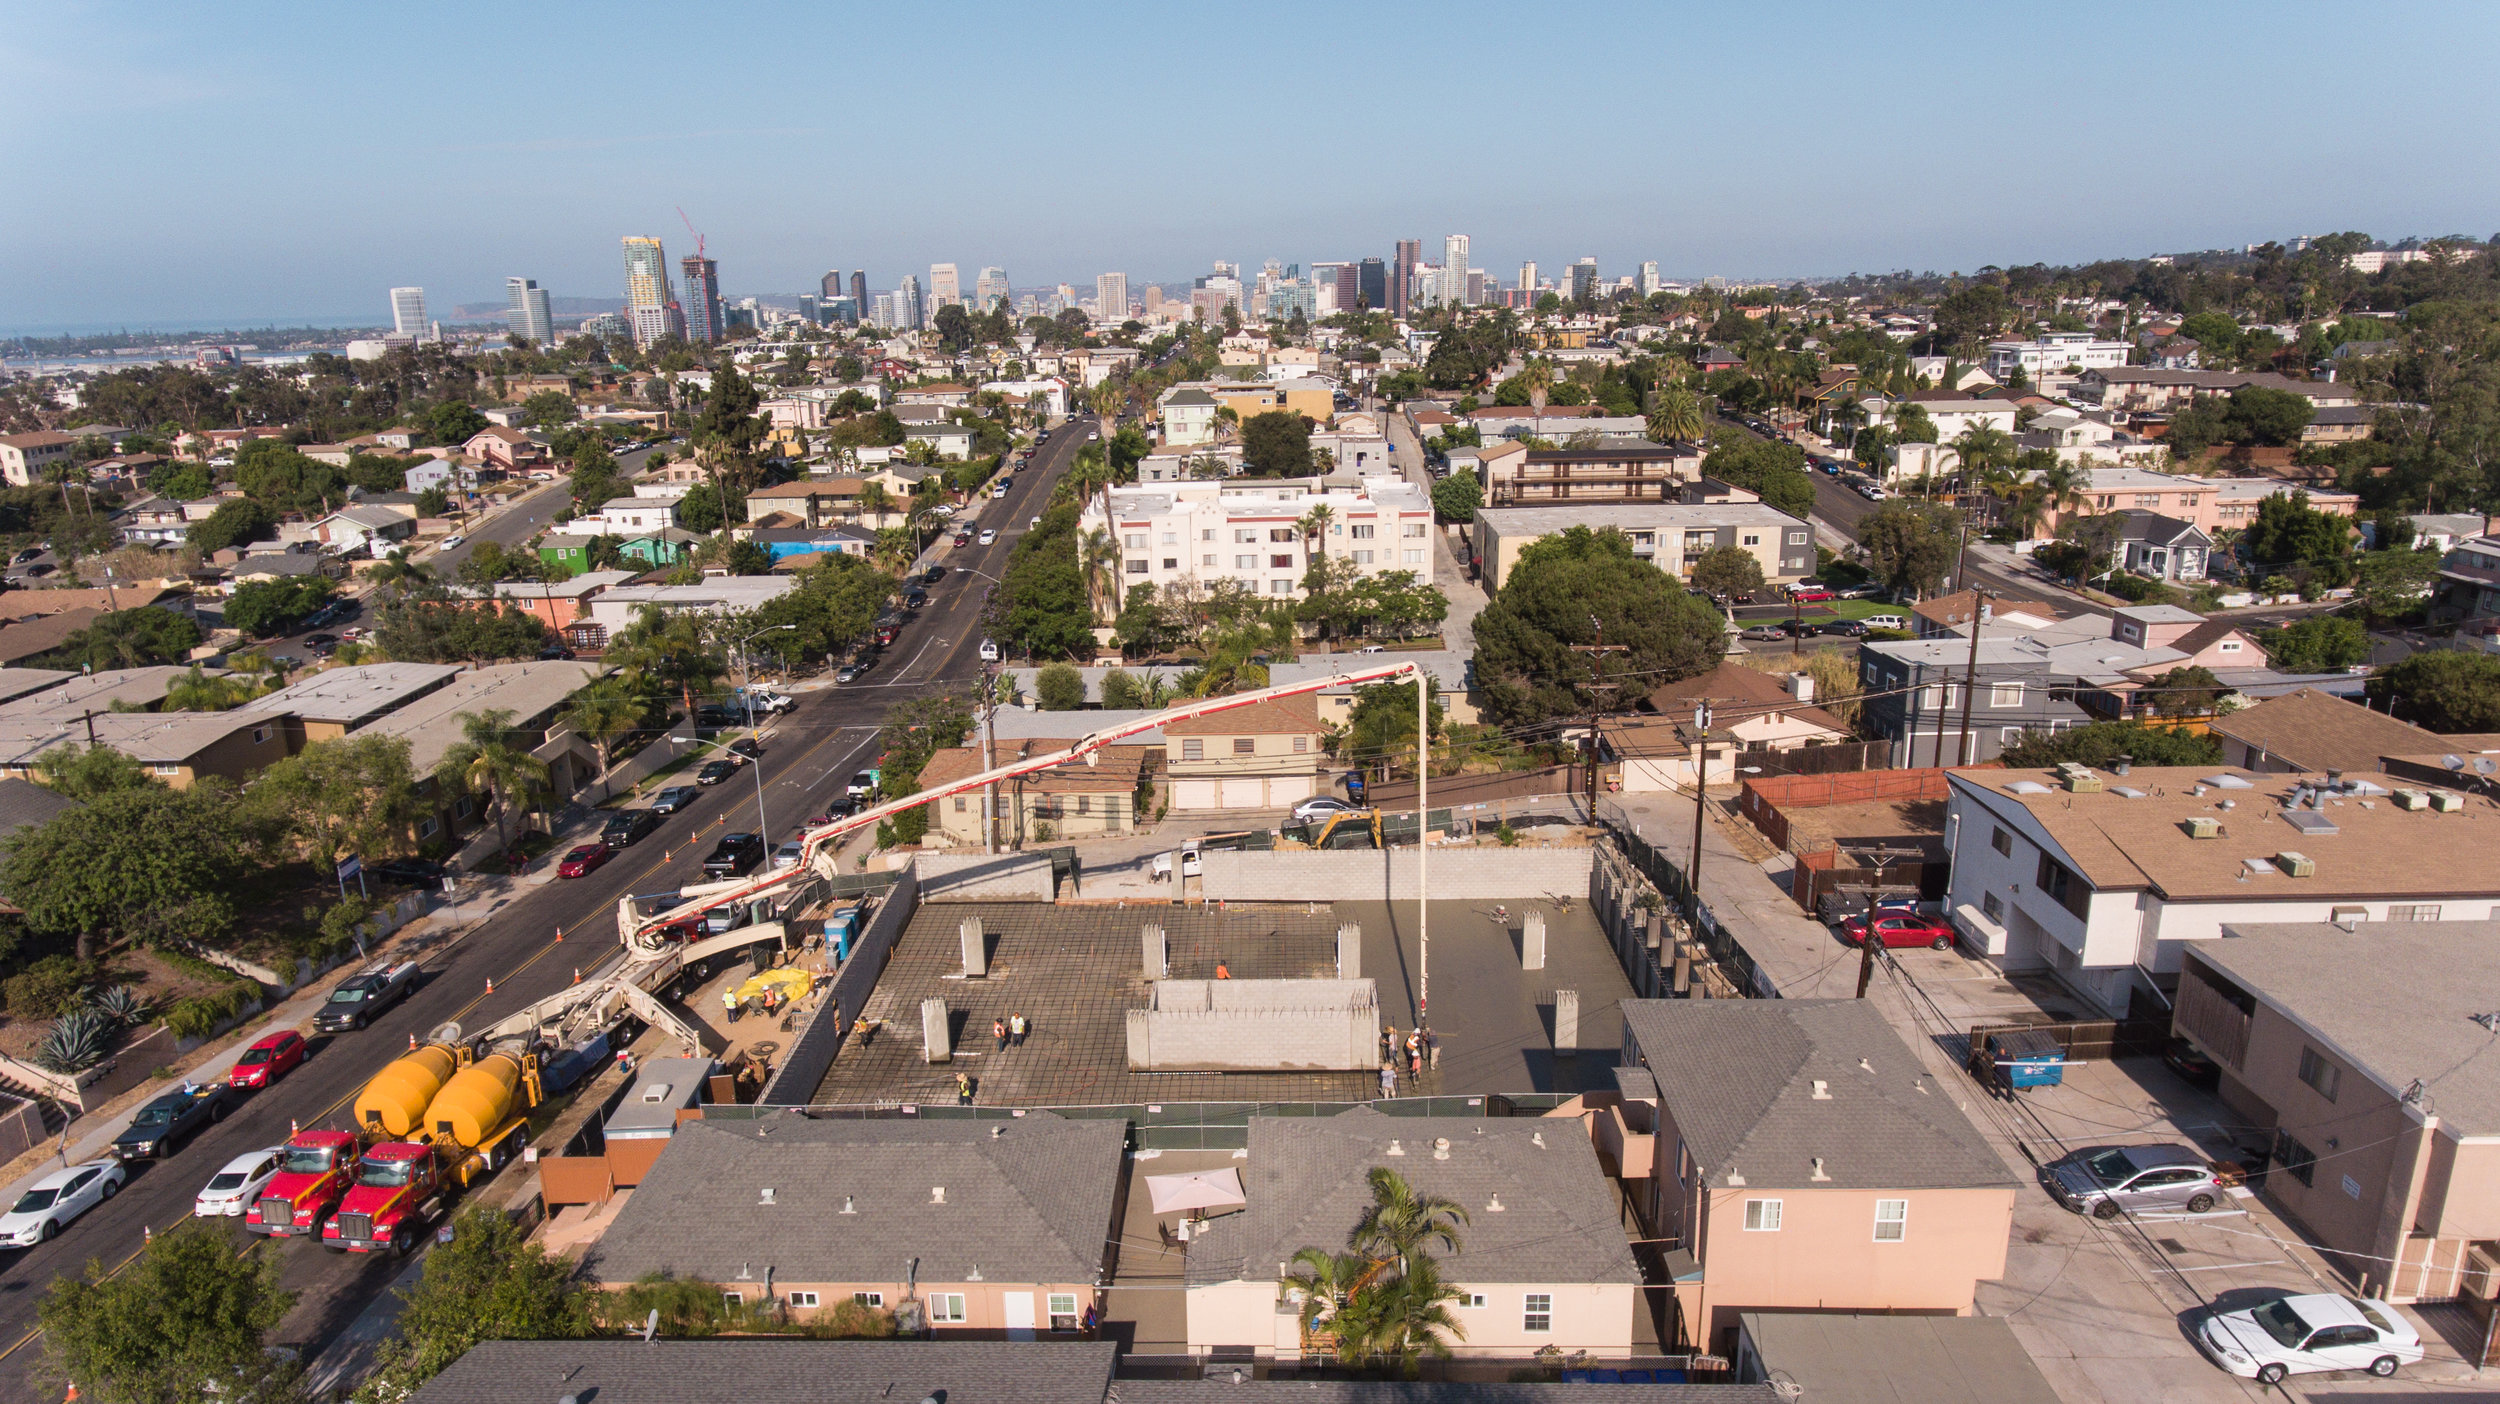 K.D. Stahl Construction Group Inc. - Broadway Apartments Construction in San Diego California